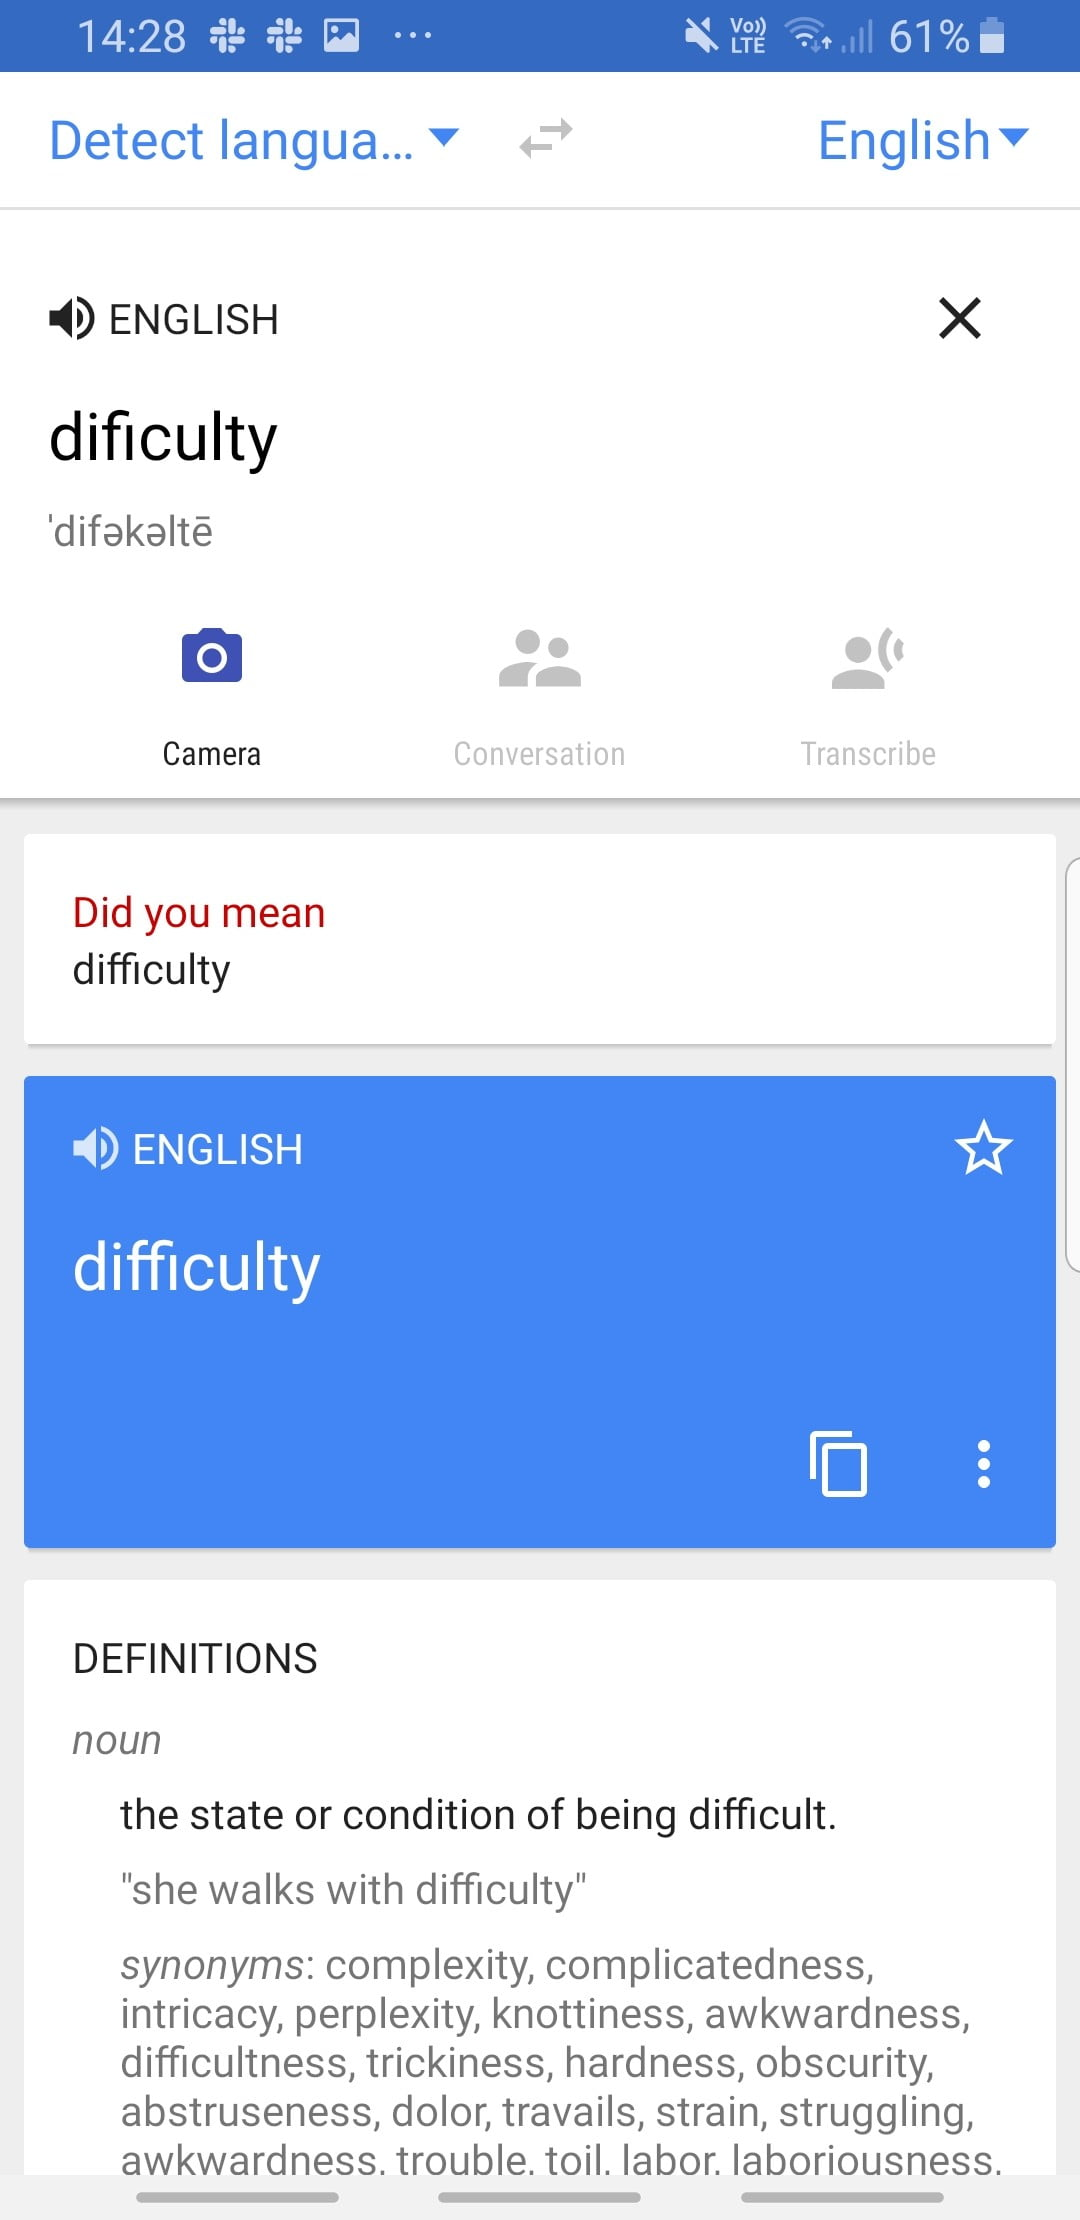 Funny Things To Make Google Translate Say : funny, things, google, translate, Google, Translate, Funny, Things